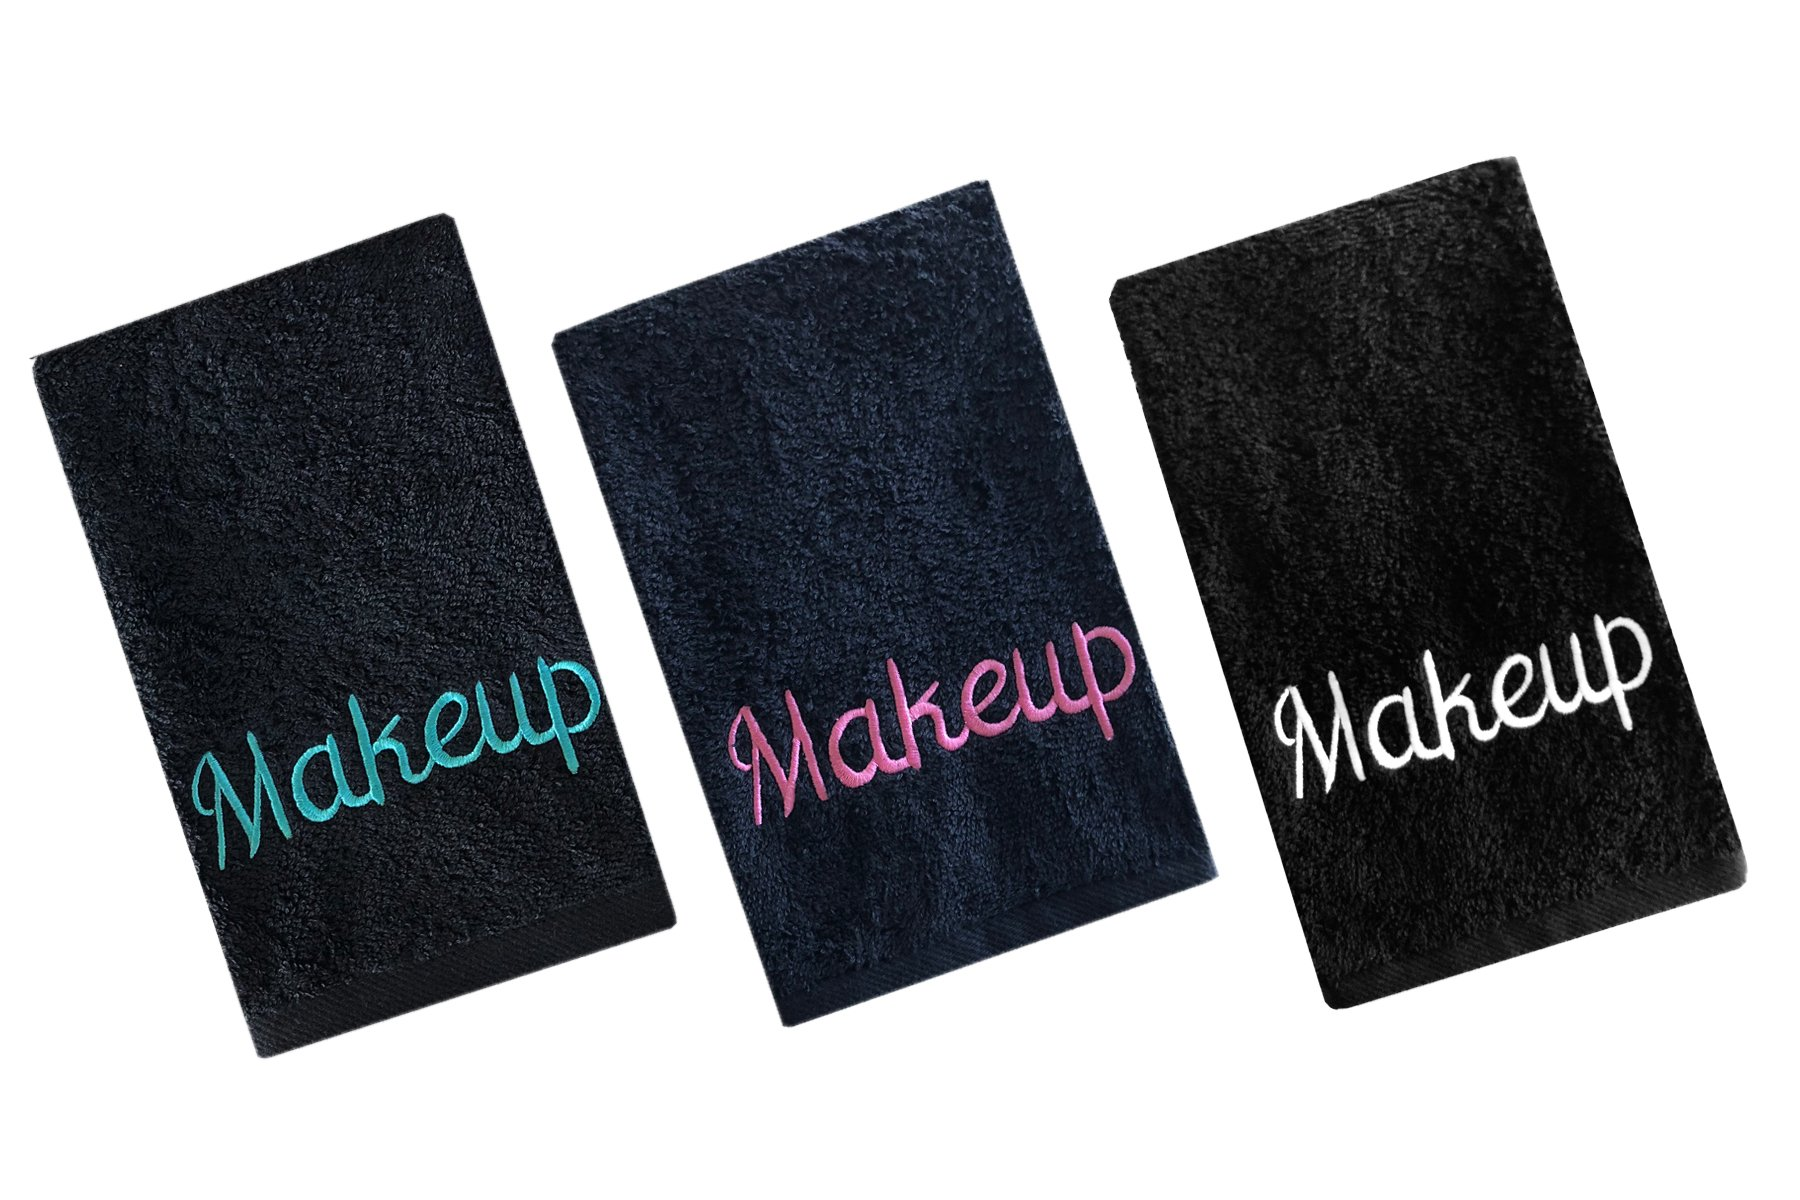 Luxury 100% Cotton Makeup Removal and Cleansing Embroidered Finger-Tip Towels by Home Bargains Plus , New Colors, Set of 3 Make-Up Finger-Tip Towels, Multi Pack 3 Colors